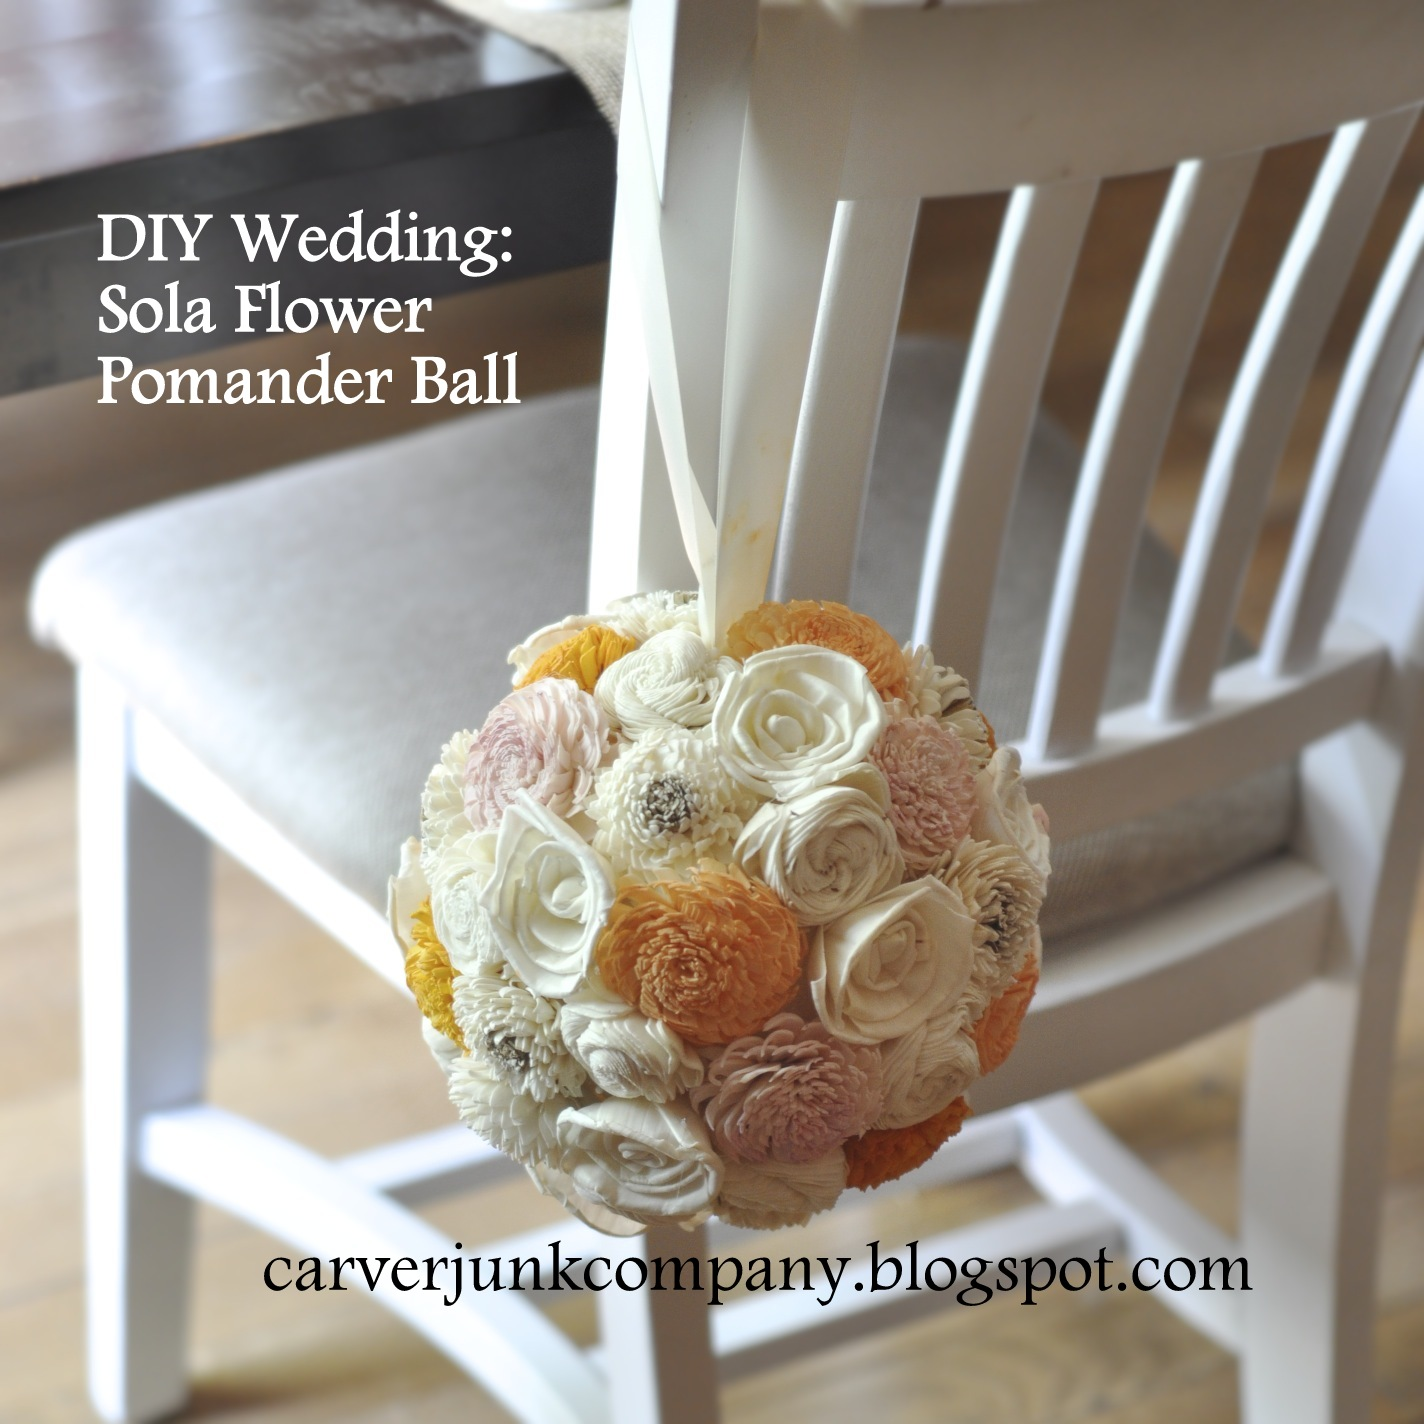 Diy wedding decor sola wood flower pomander balls mightylinksfo